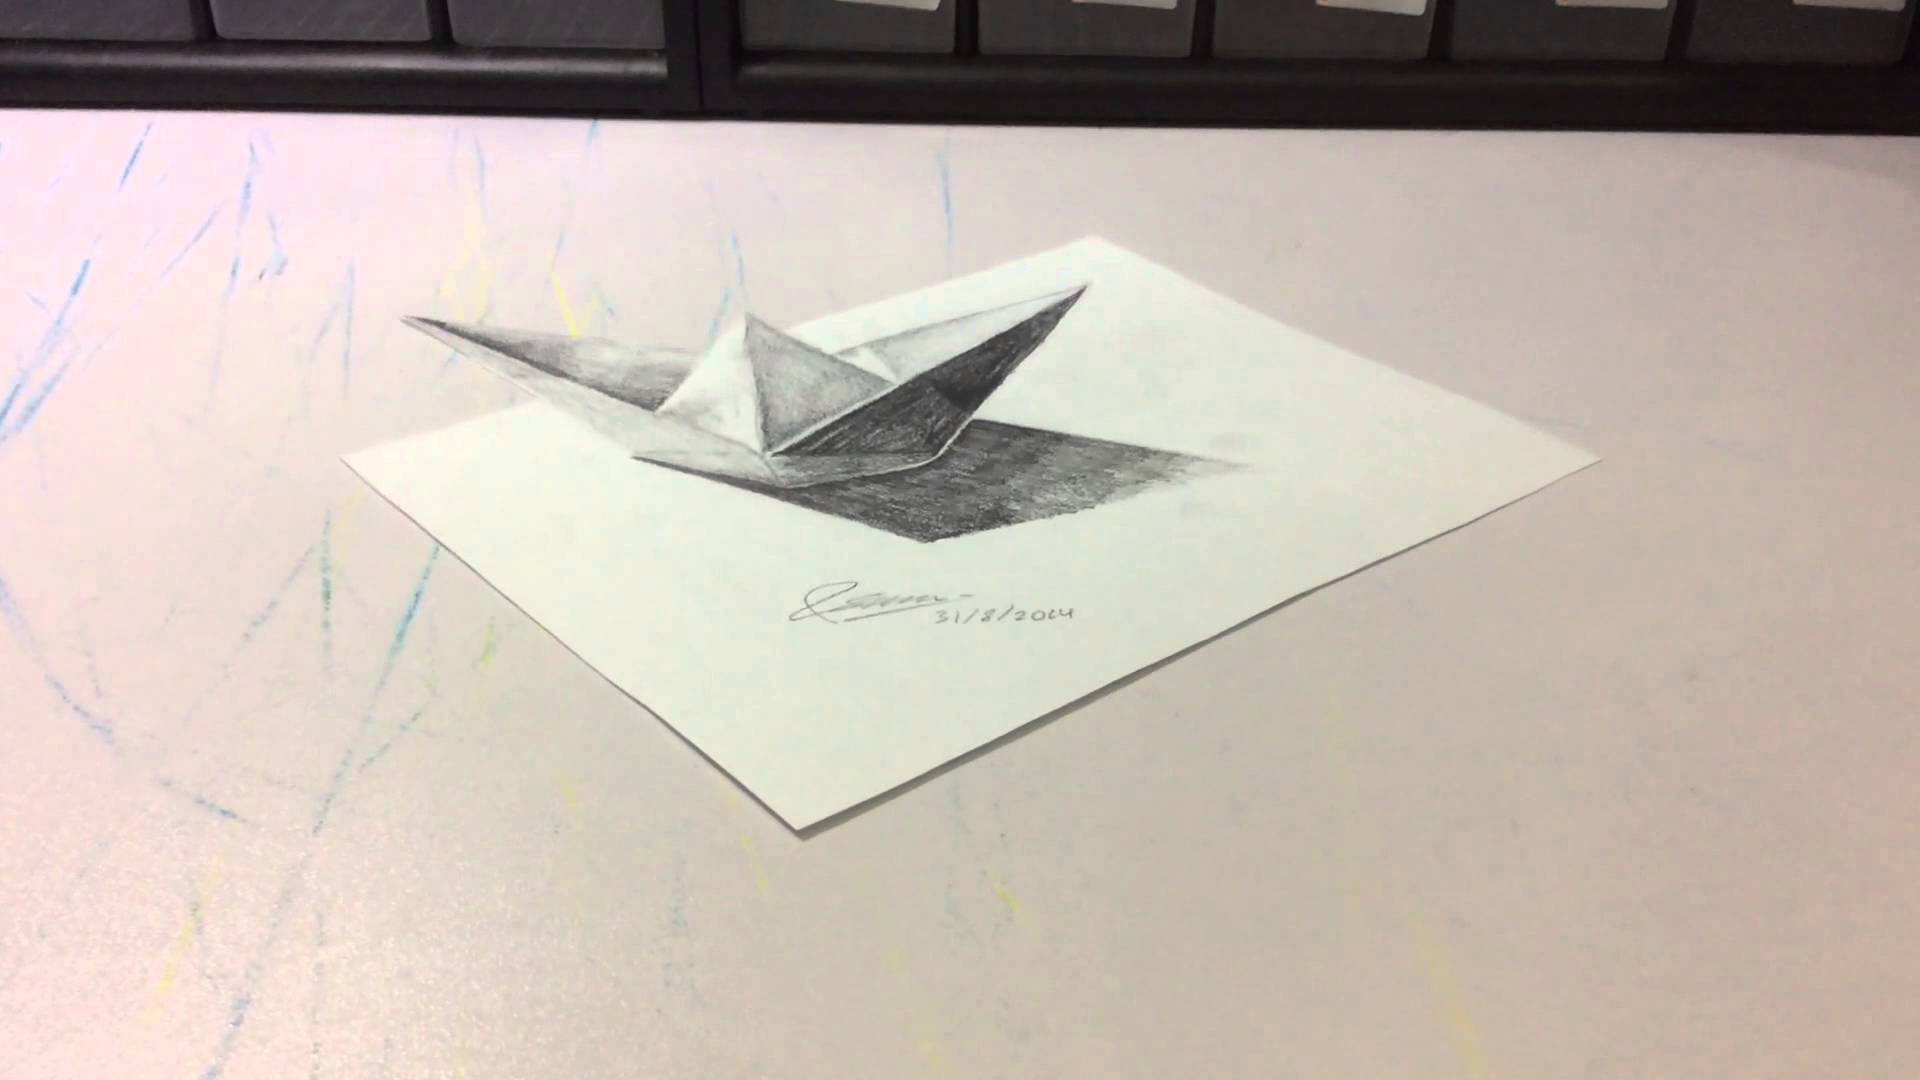 Drawn origami 3D boat drawing Unsubscribe origami